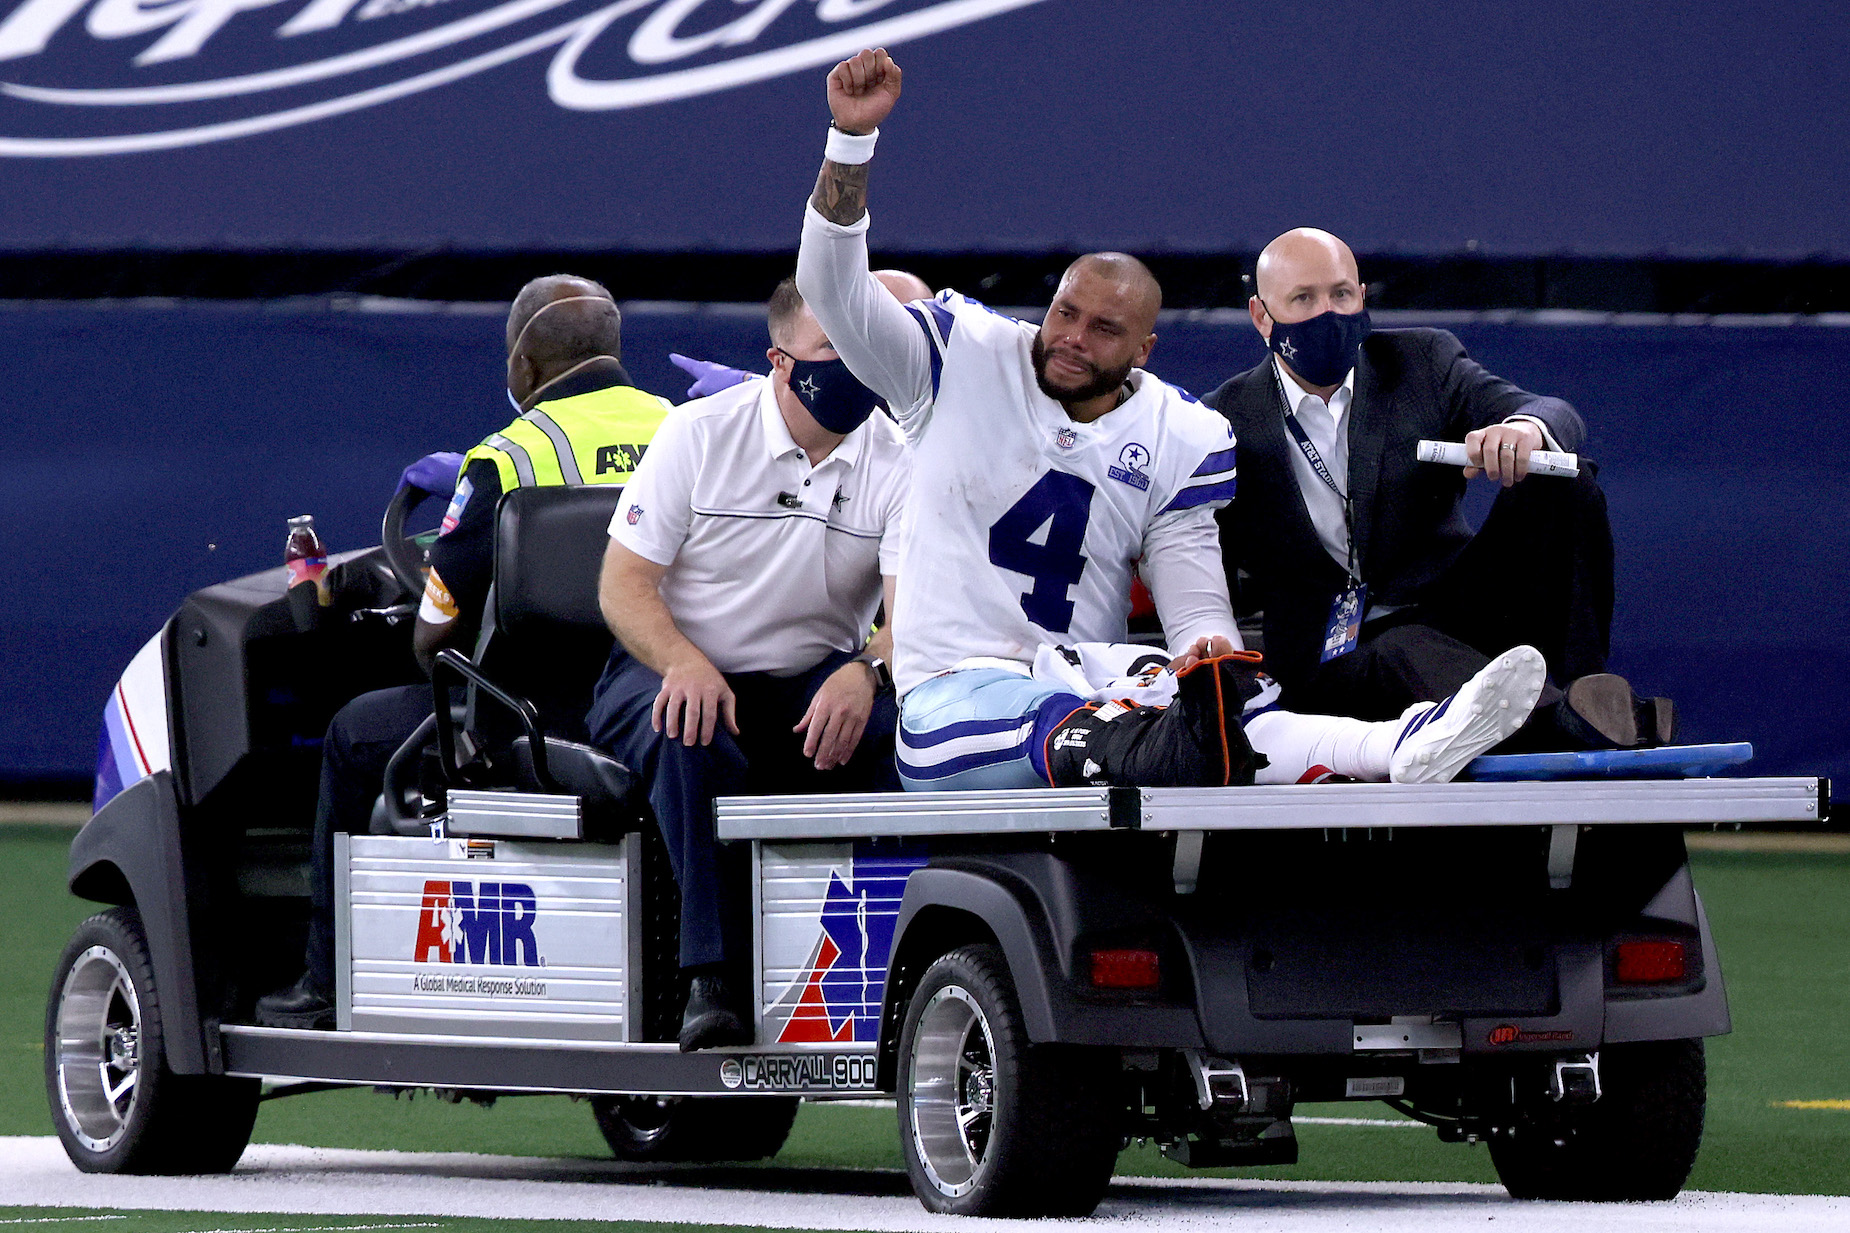 While Dak Prescott's ankle injury was gruesome, Jerry Jones is already overreacting.